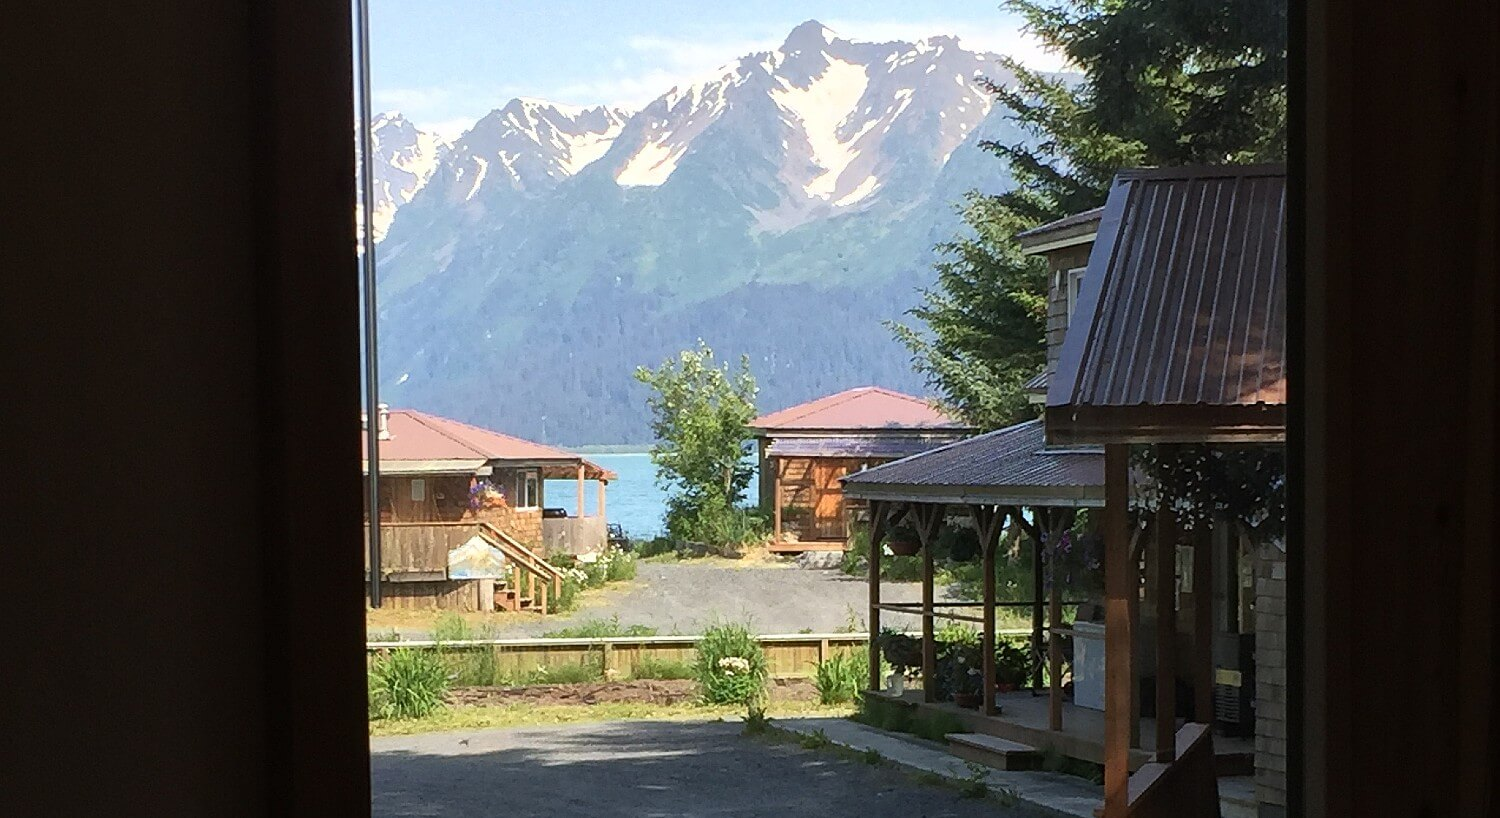 View out of a large window showing several small brown cabins in front of a bay and tall snow-capped mountains